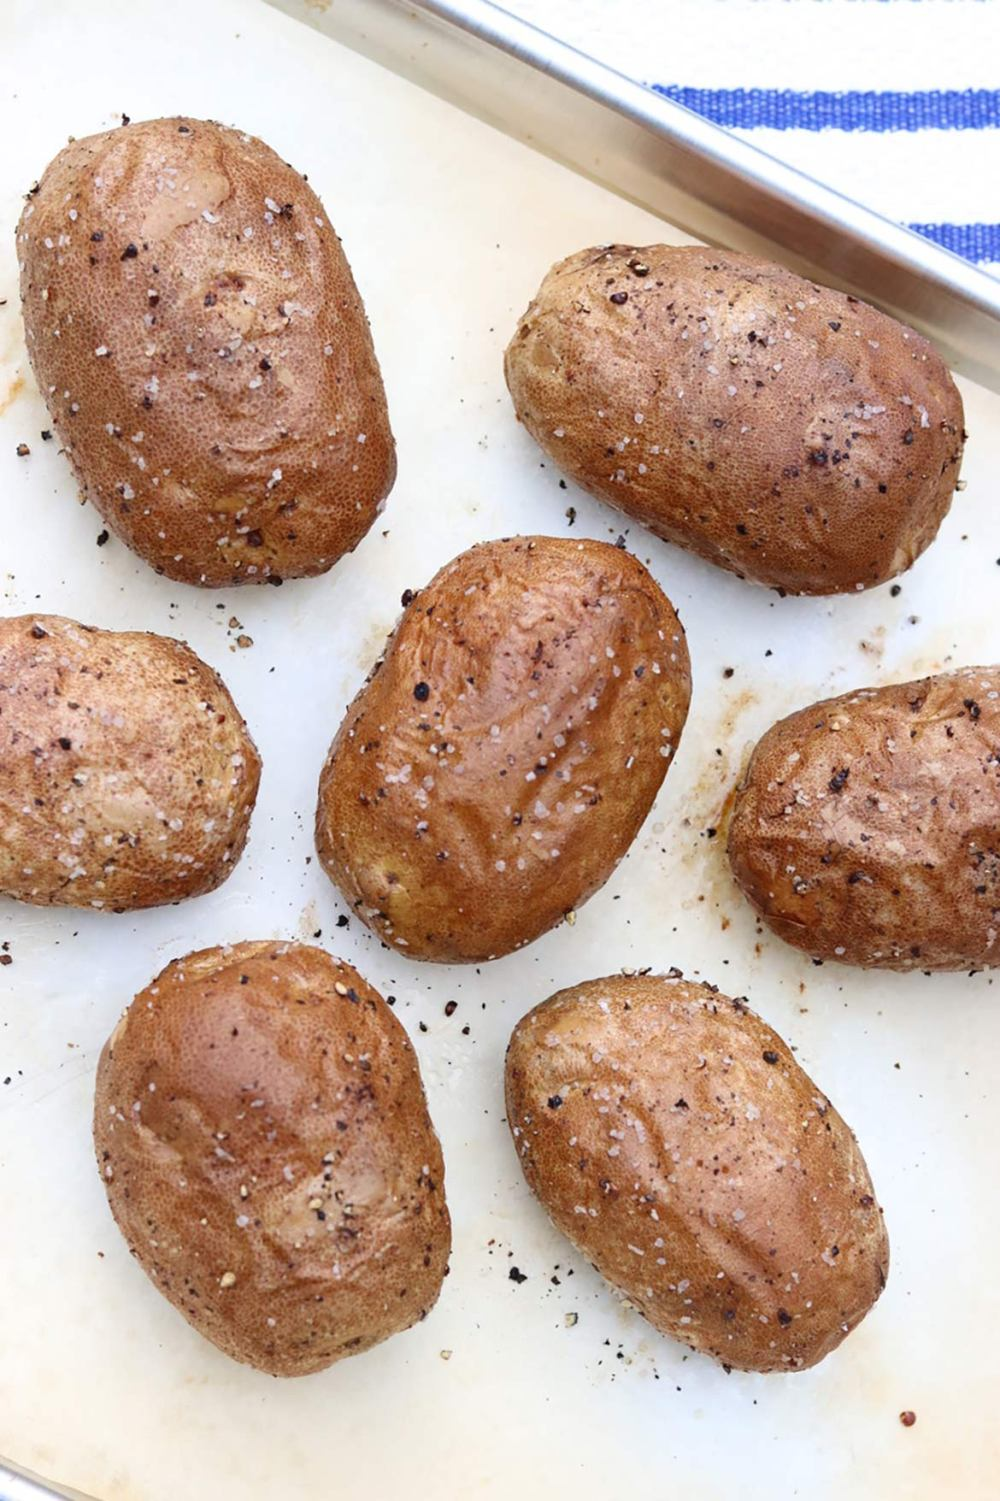 This basic technique guarantees potatoes with crisp, flavorful skins and light, fluffy insides each and every time.